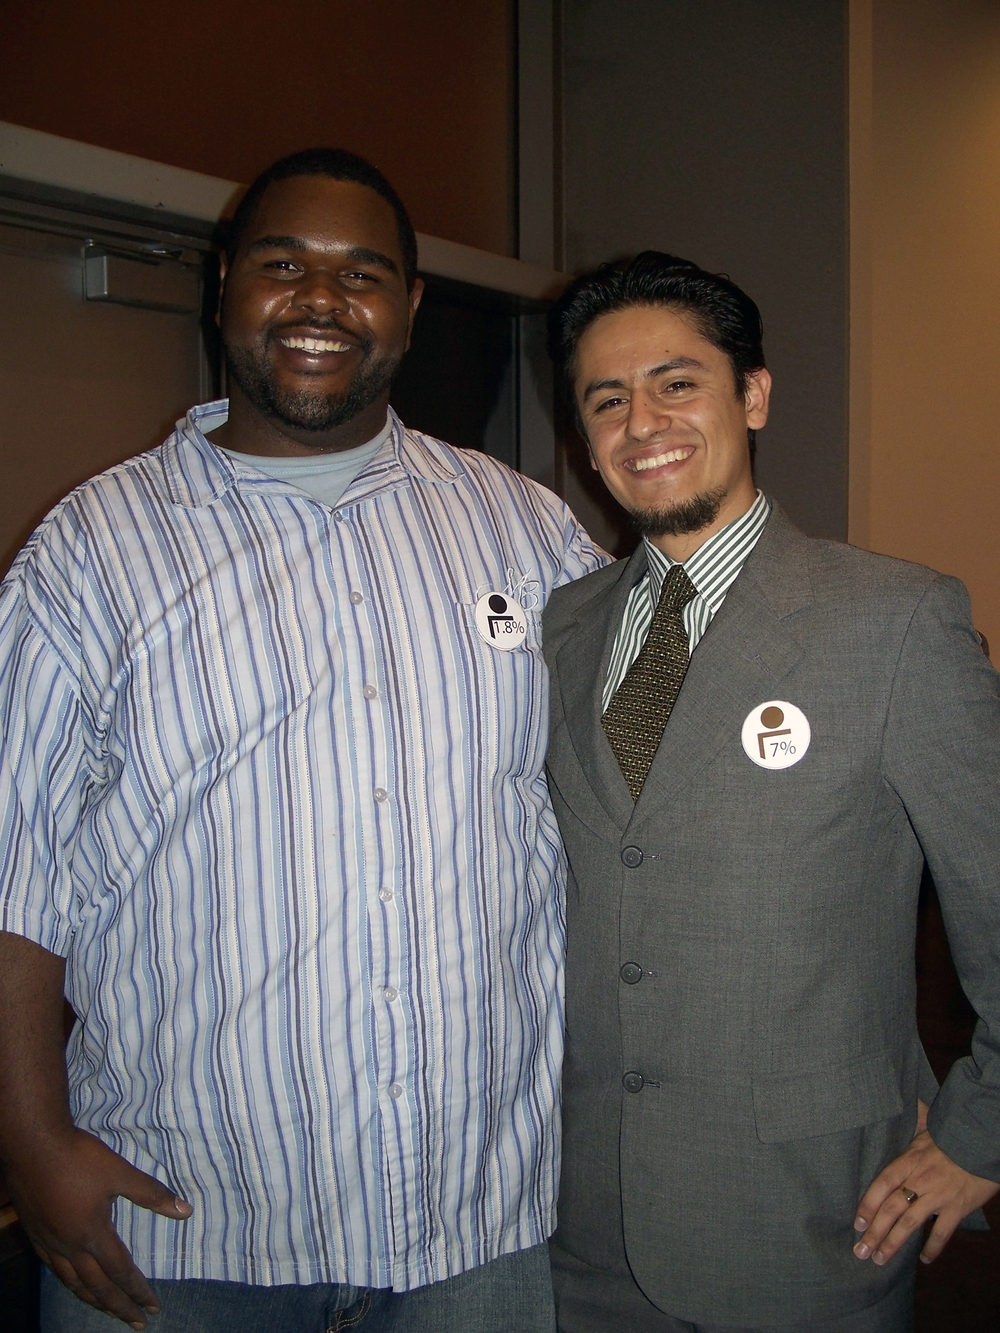 Students, Robert Yancey and Carlos Sevadra, sporting their buttons at CCA art opening